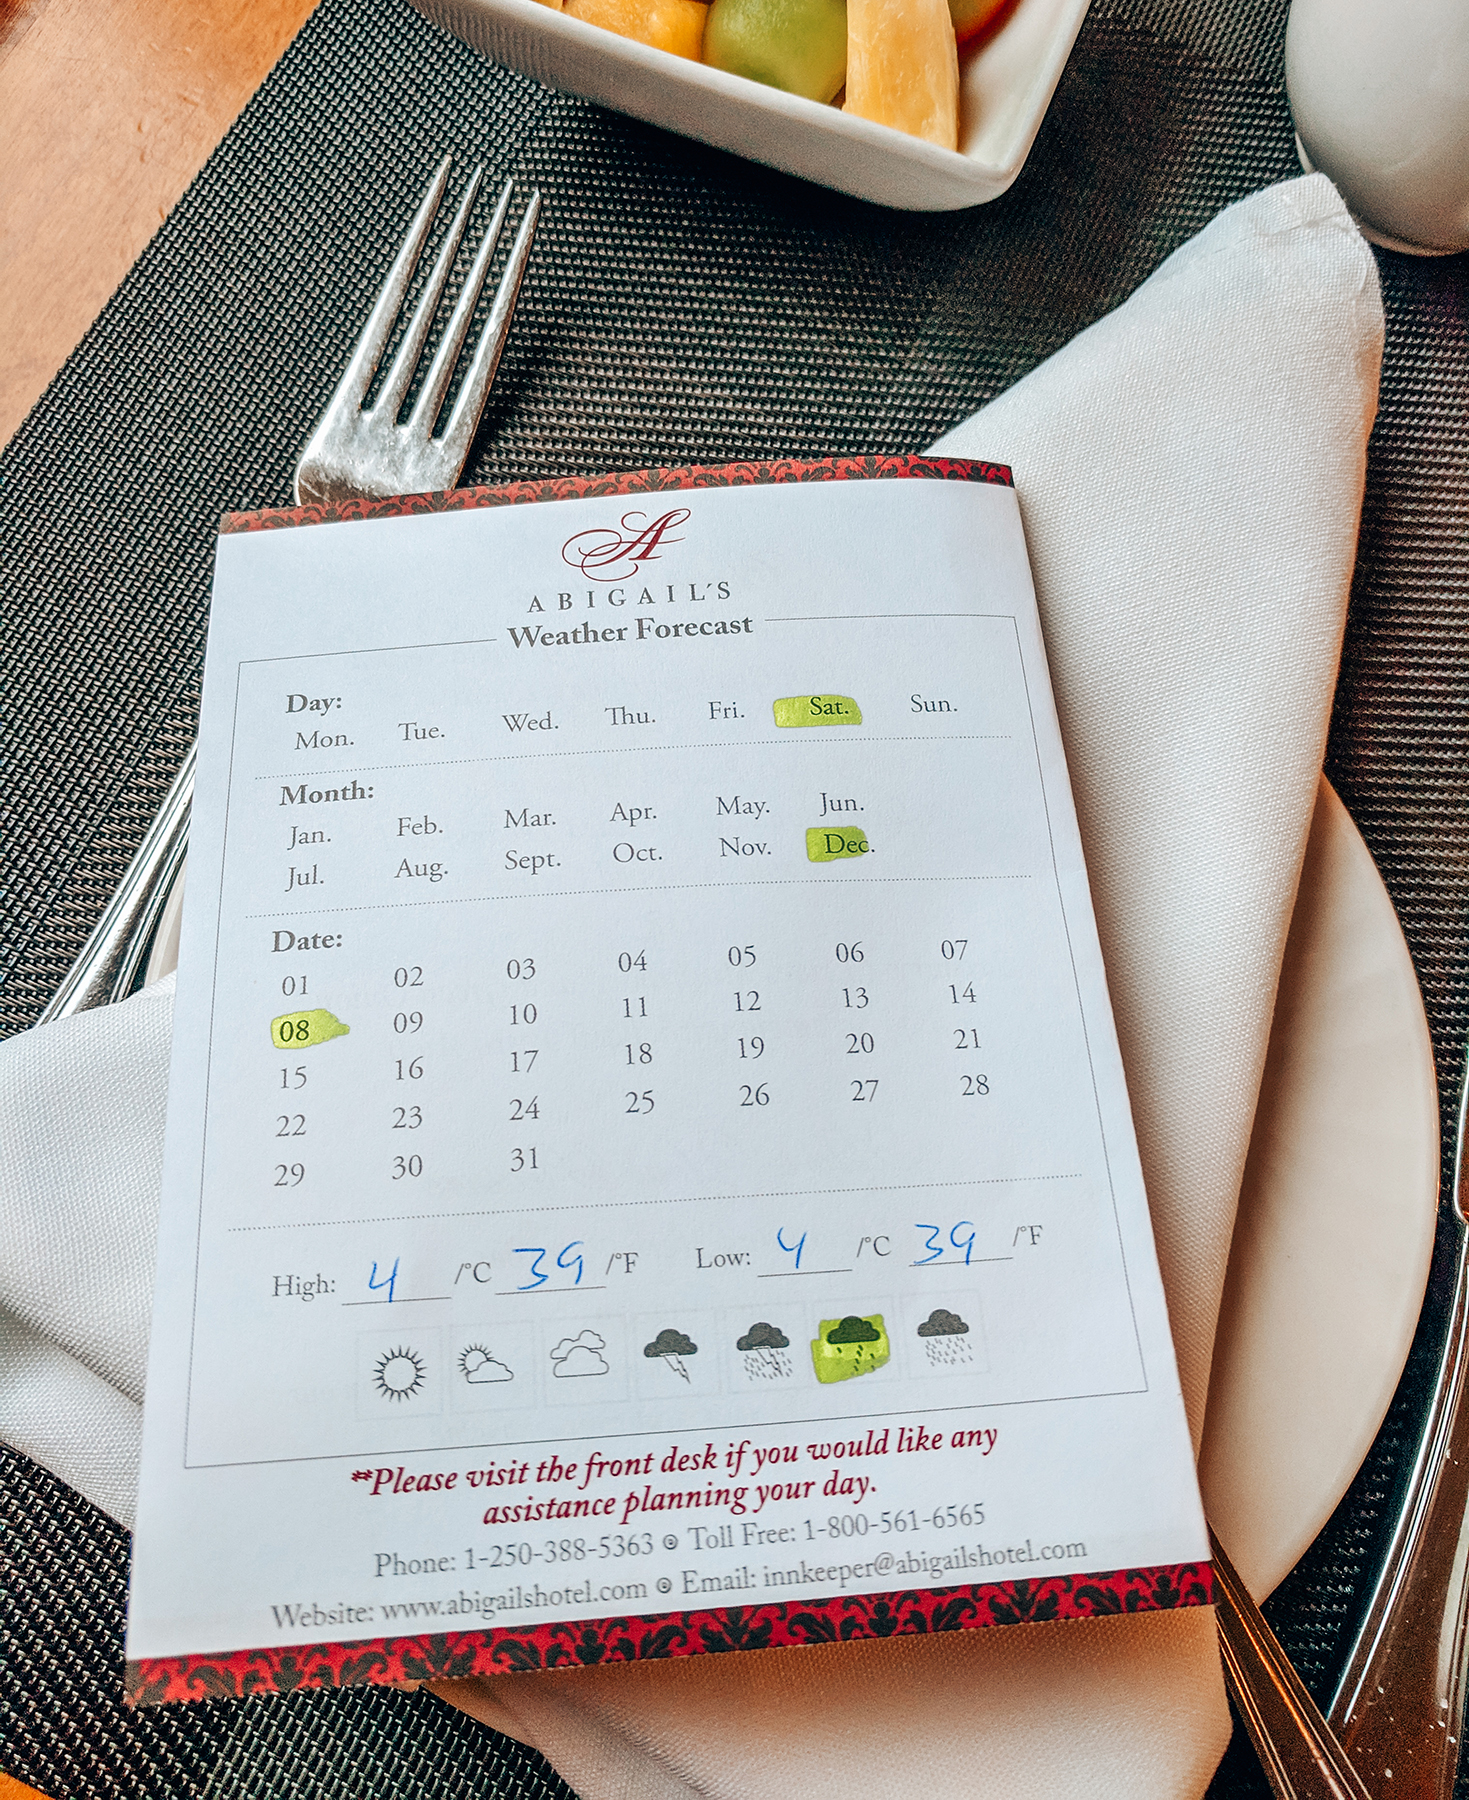 Abigails-first-breakfast-menu-forecast.jpg